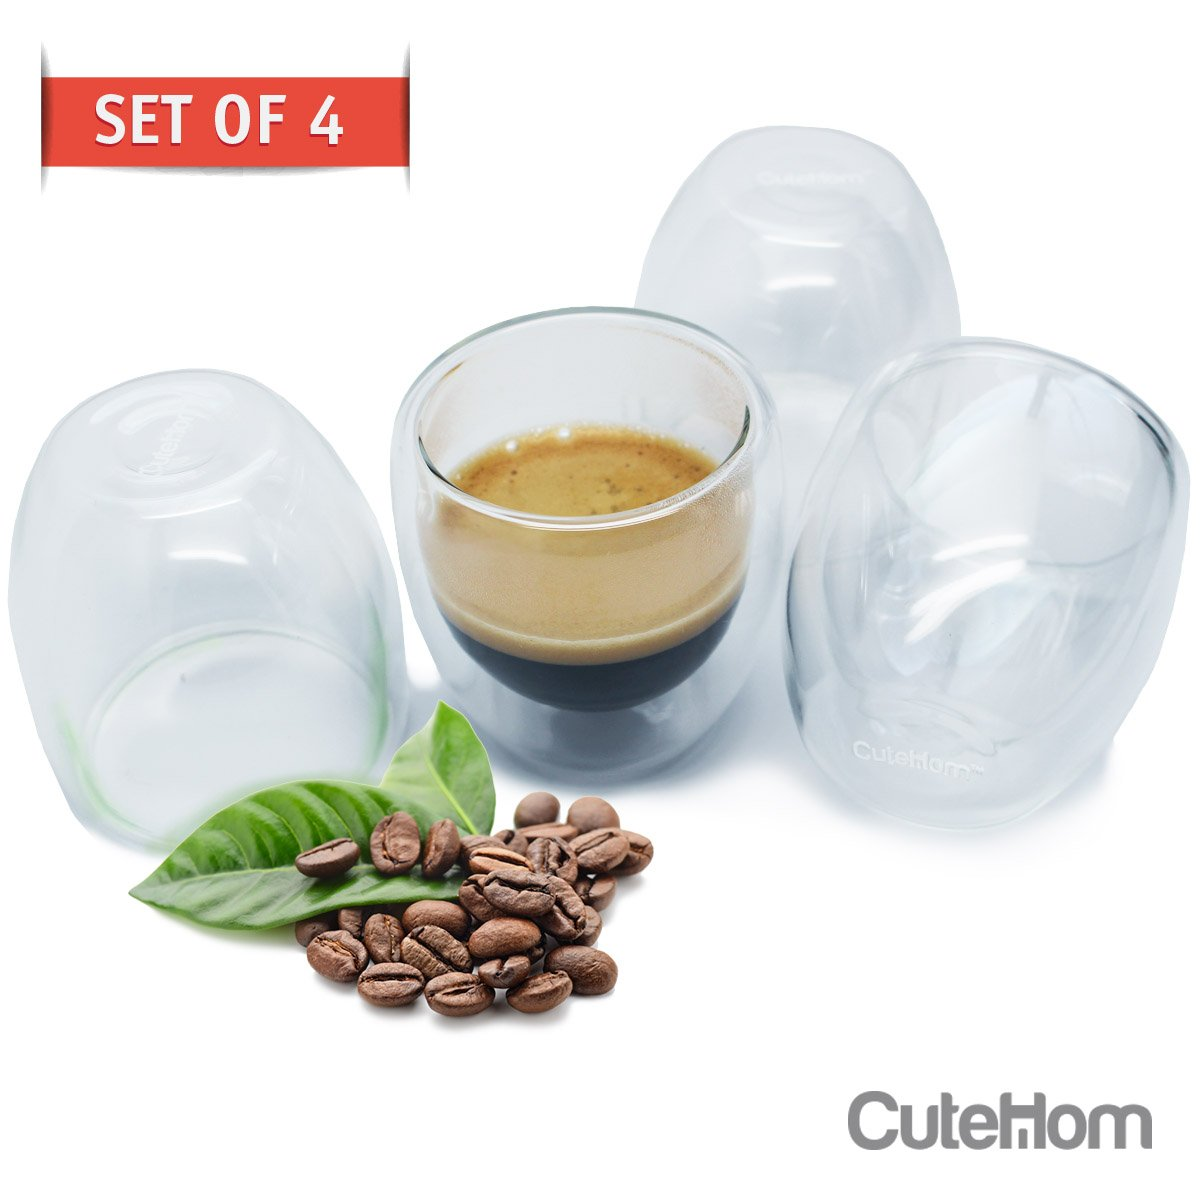 Cutehom Espresso Coffee Cups - Set of 4 Double Wall Shot Glasses